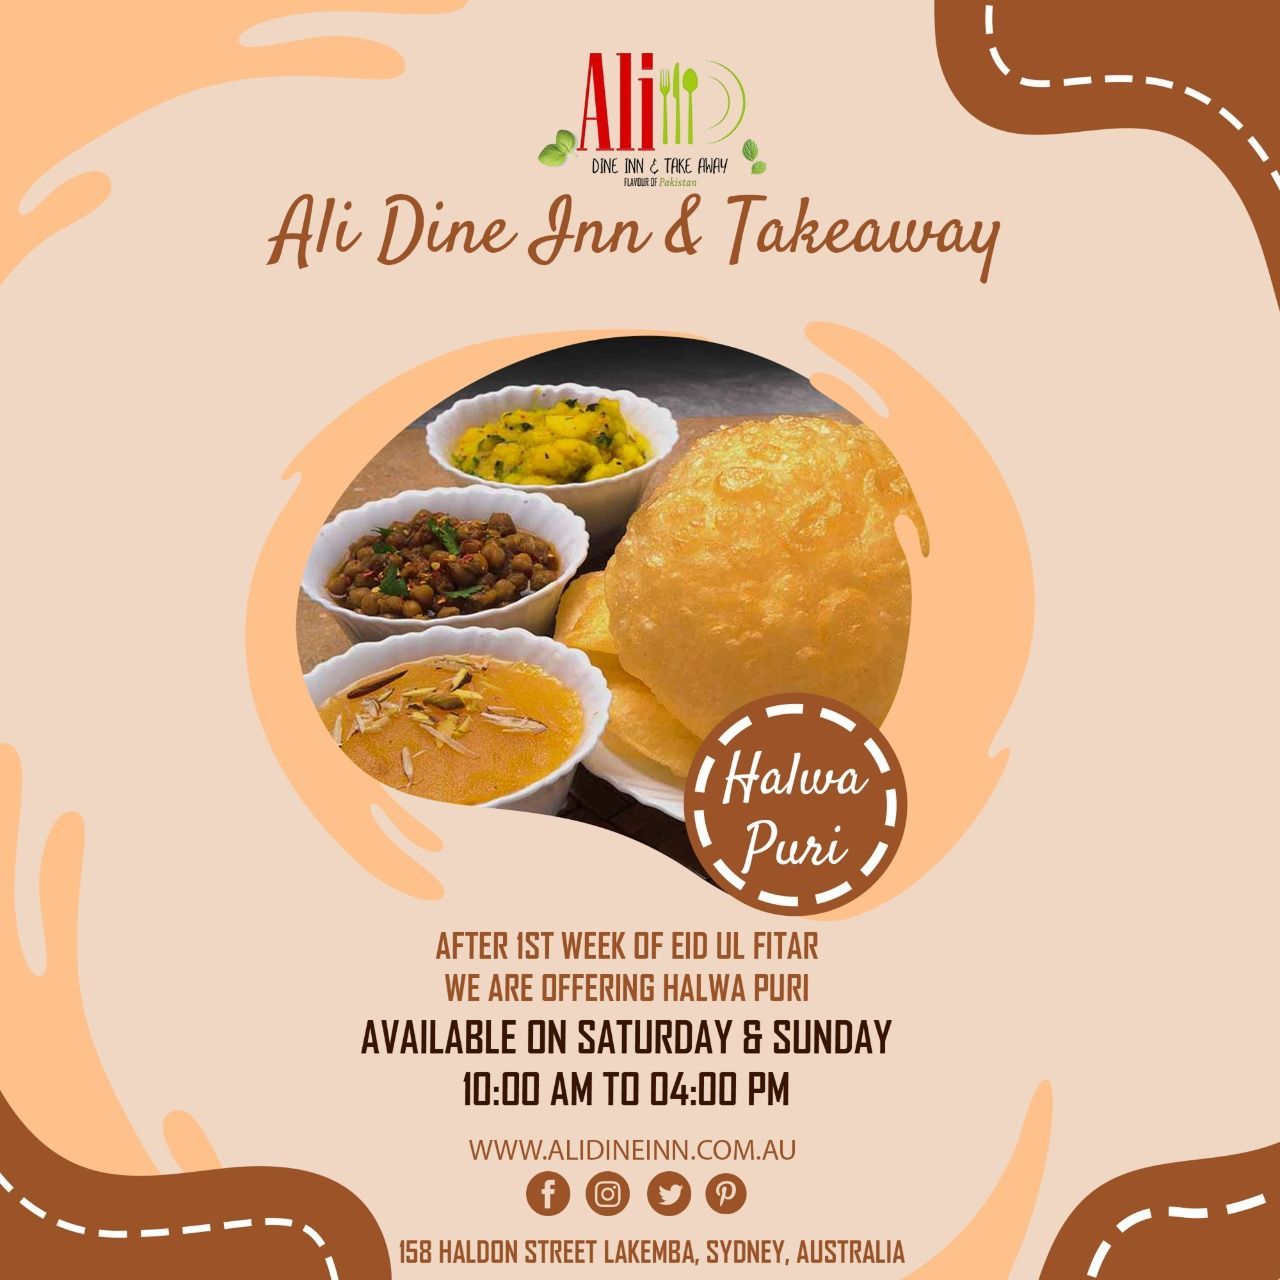 Make your weekend extra special with Halwa Puri by Ali Dine Inn & Takeaway Lakemba You have to reach Saturday and Sunday, Timings are 10 am to 4 pm in order to enjoy fresh Halwa Puri. #alidineinandtakeaway #halwapuri #Breakfast #lunch #halwa #desibreakfast #FoodPhoto #food #foodie #yummy #delicious #sydneylocals #sydneyeats #sydneyfoodies #sydneyhotels #foodlovers #foodstyling #foodblogger #sydneyfood #Sydney #muslimsinsydney #pakistanis #indiansinsydney #foodinsta #foodgram #sydneycatering